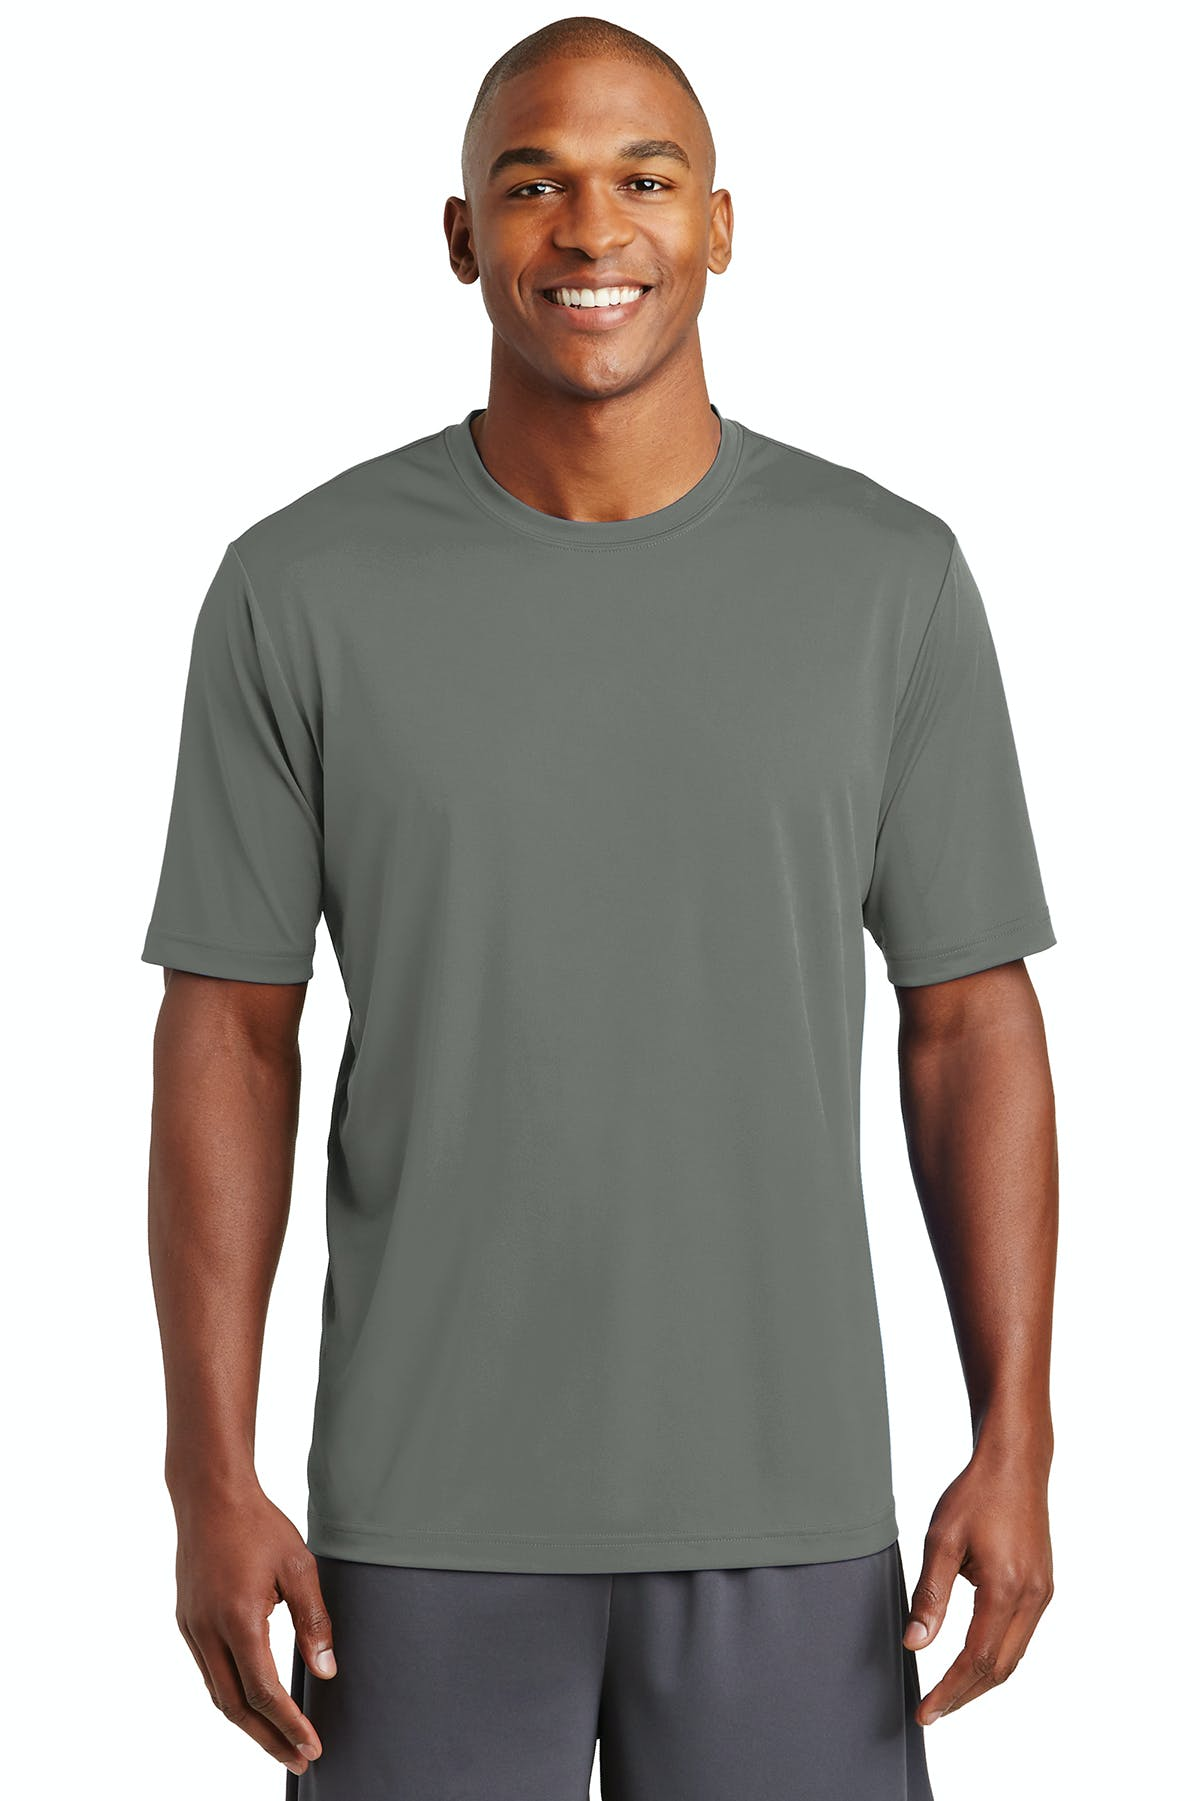 Sport-Tek® PosiCharge® Tough Tee® - sold by PRINT CITY GRAPHICS, INC